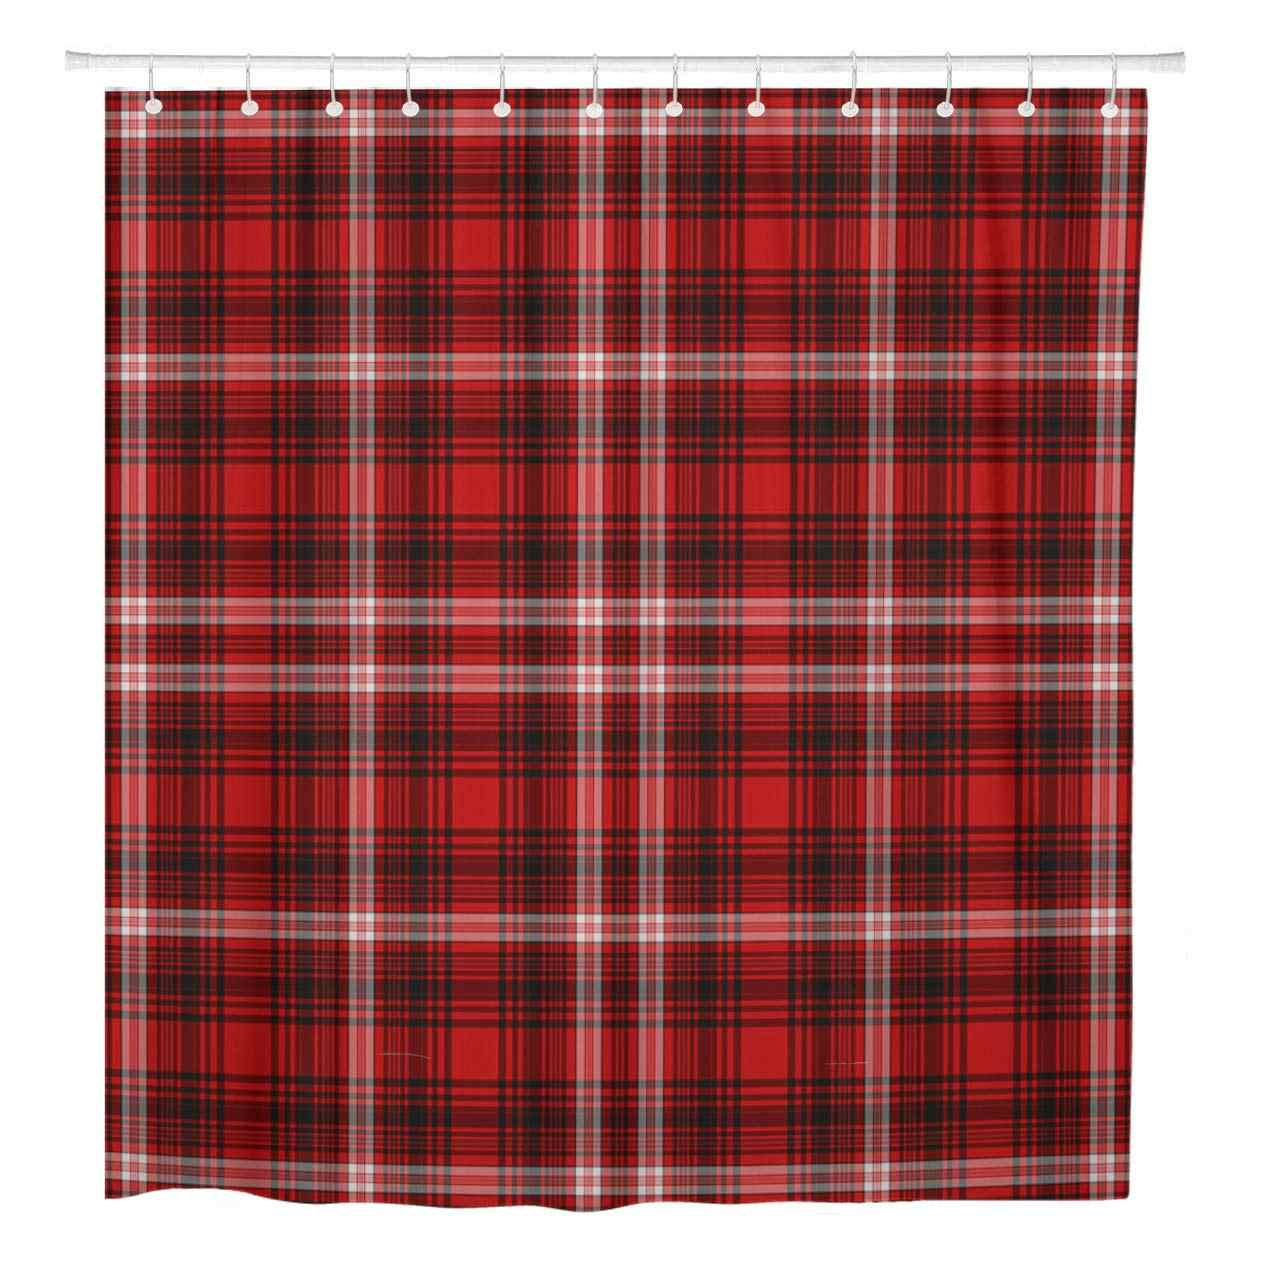 Red Tartan Plaid Shower Curtain Country Cottage 72 x 72 Cloth Christmas Lodge